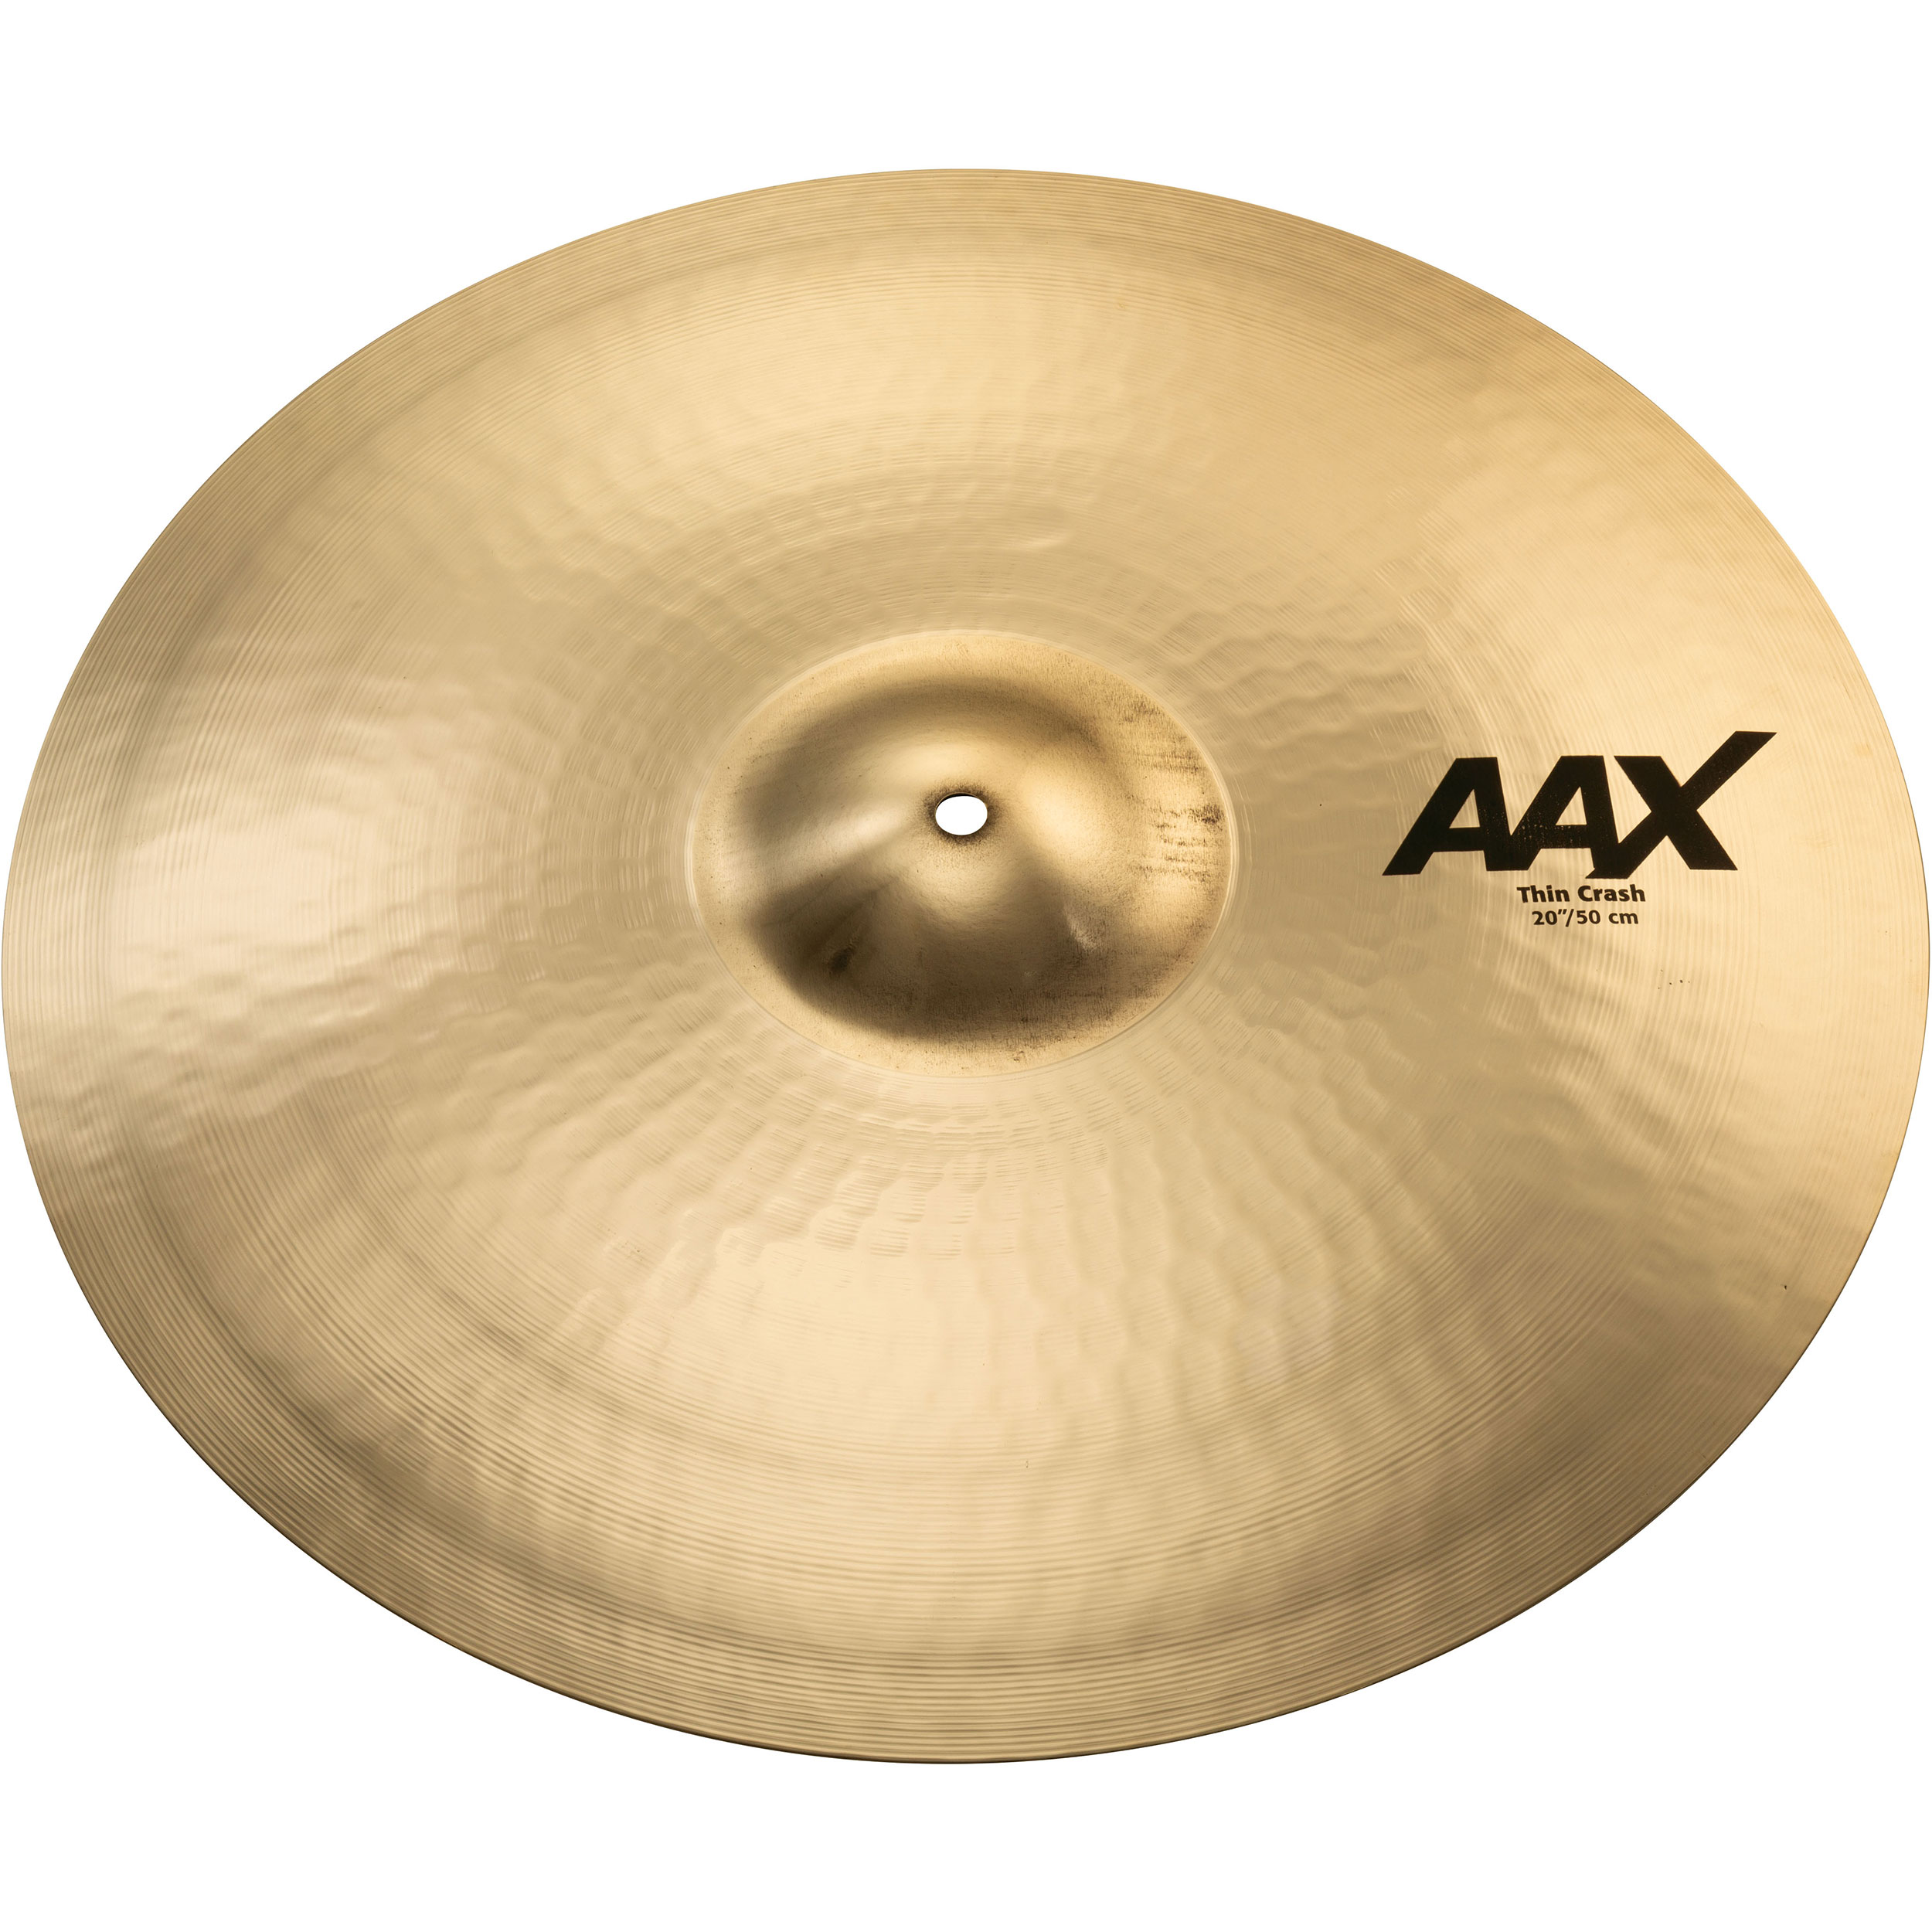 "Sabian 20"" AAX Thin Crash Cymbal"